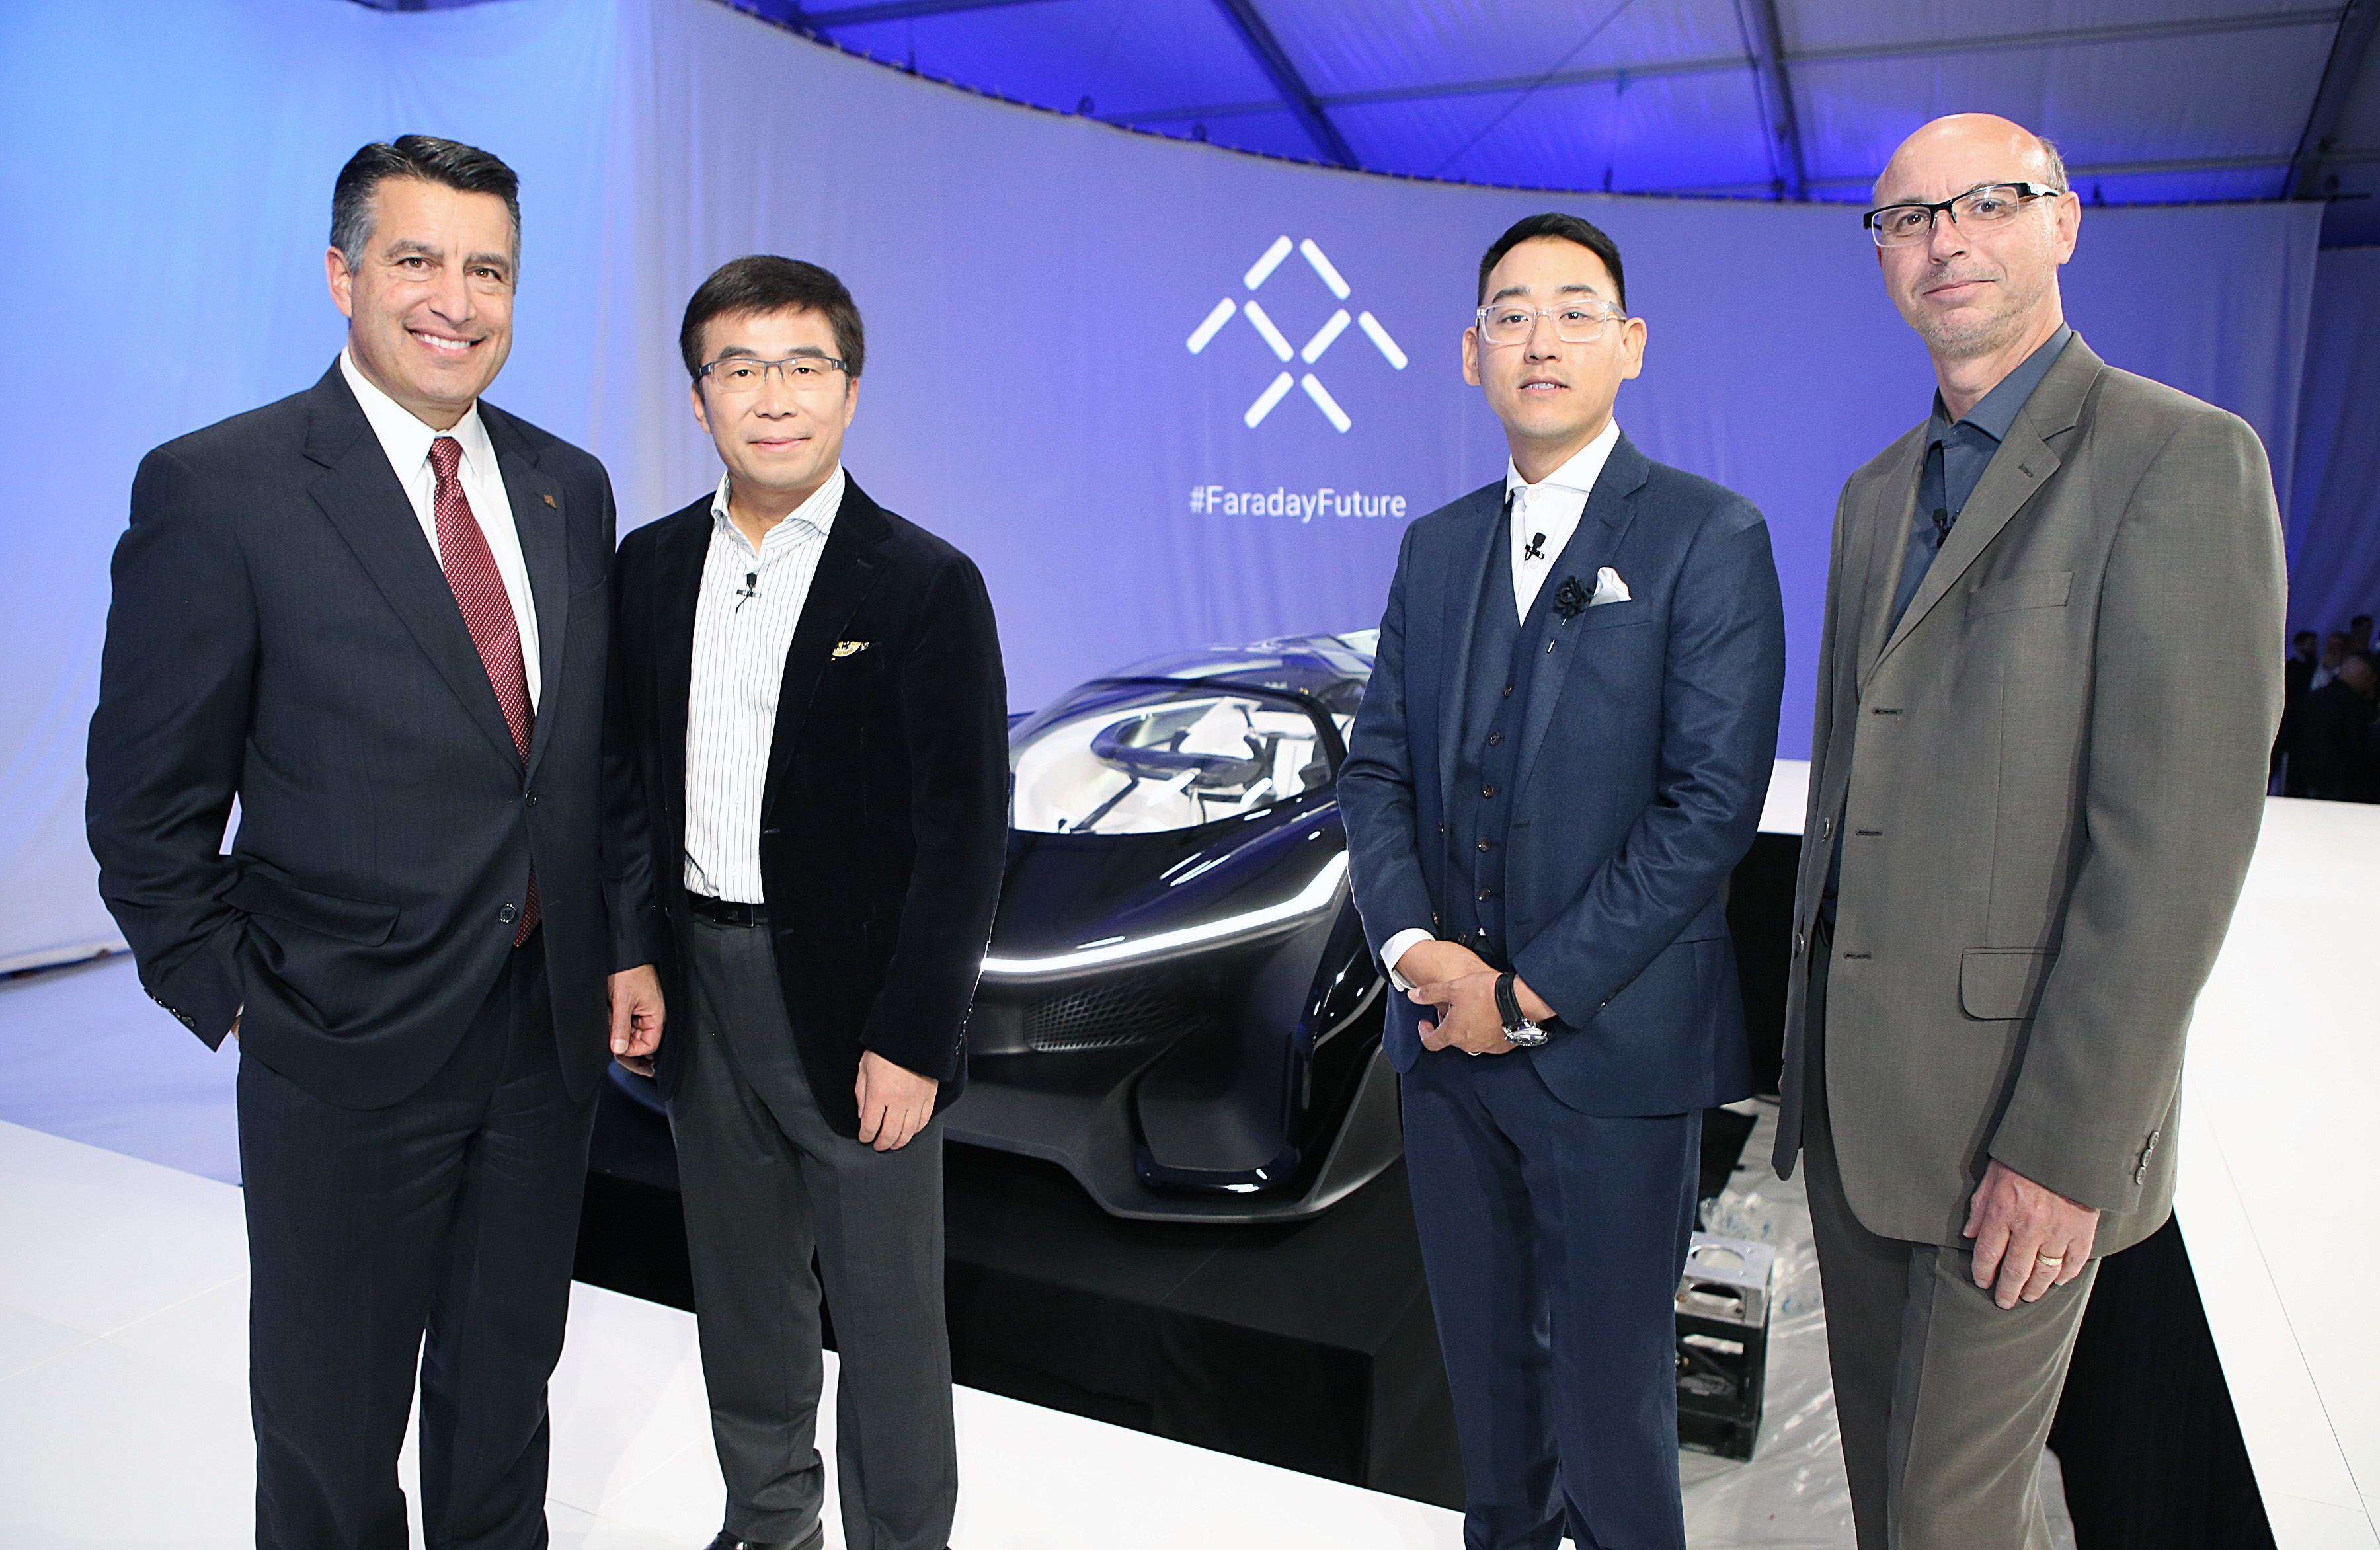 Governor Sandoval, left, Ding Lei, Co-Founder, Global Vice Chairman, Managing Director, SEE Plan, Letv, second left, Richard Kim, Faraday Future Global Design Director, second tight, and Nick Sampson, VP of R&D and Engineering pose for a photo during Faraday Future's pre-CES reveal of FFZERO1 Concept in Las Vegas on Monday, Jan. 4, 2016. (Bizuayehu Tesfaye/ AP Images for Faraday Future)